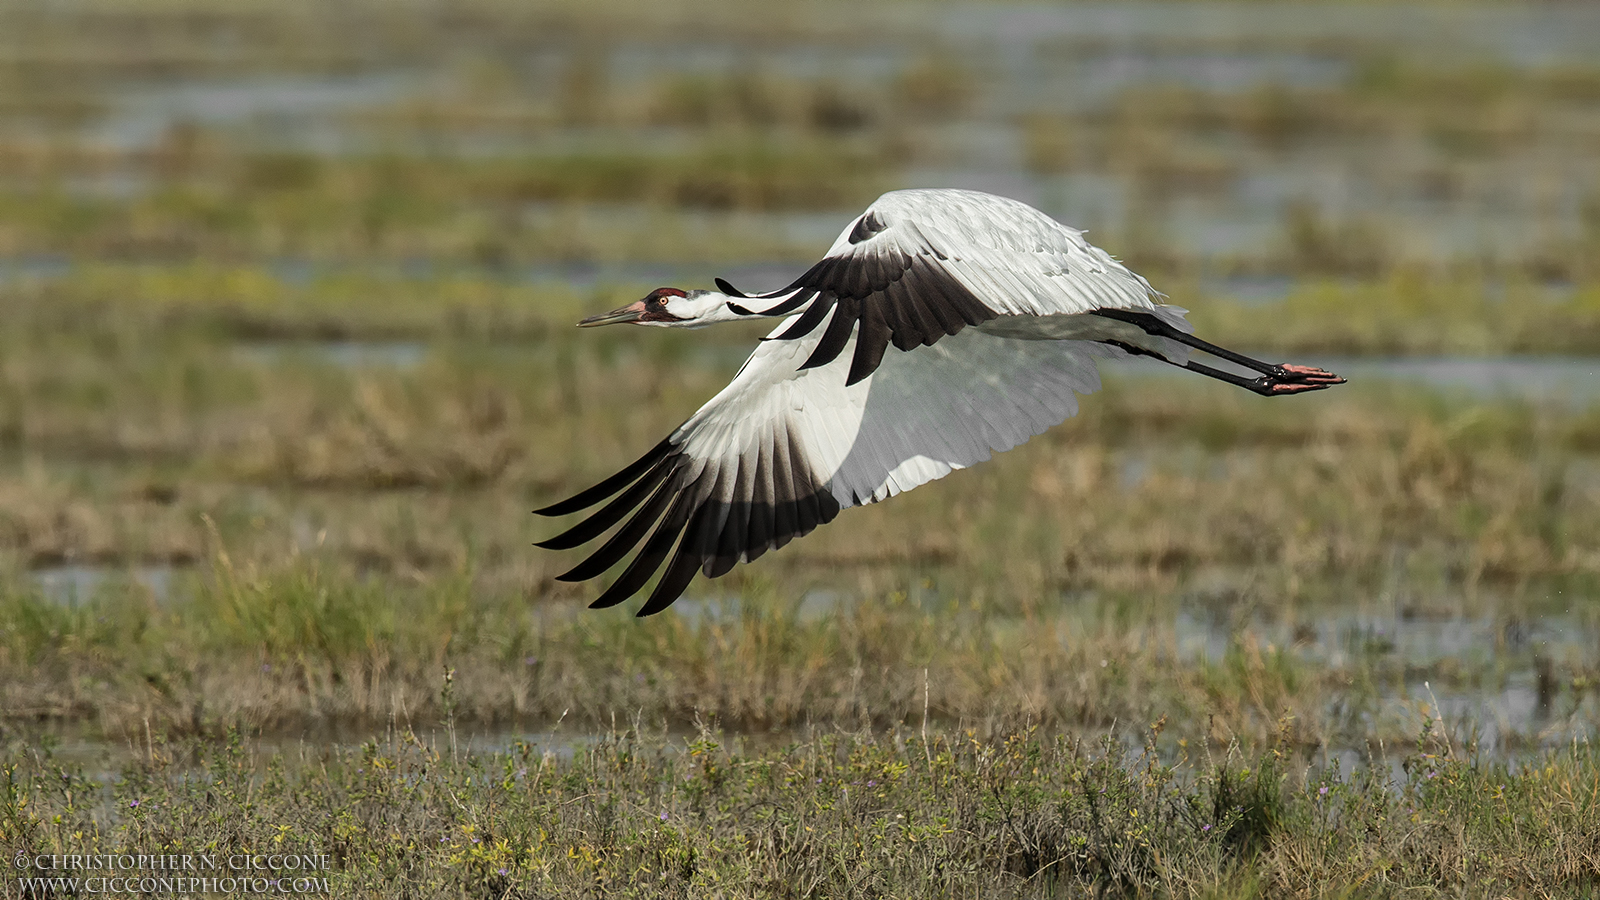 Webinars and other events for birders during Earth Week